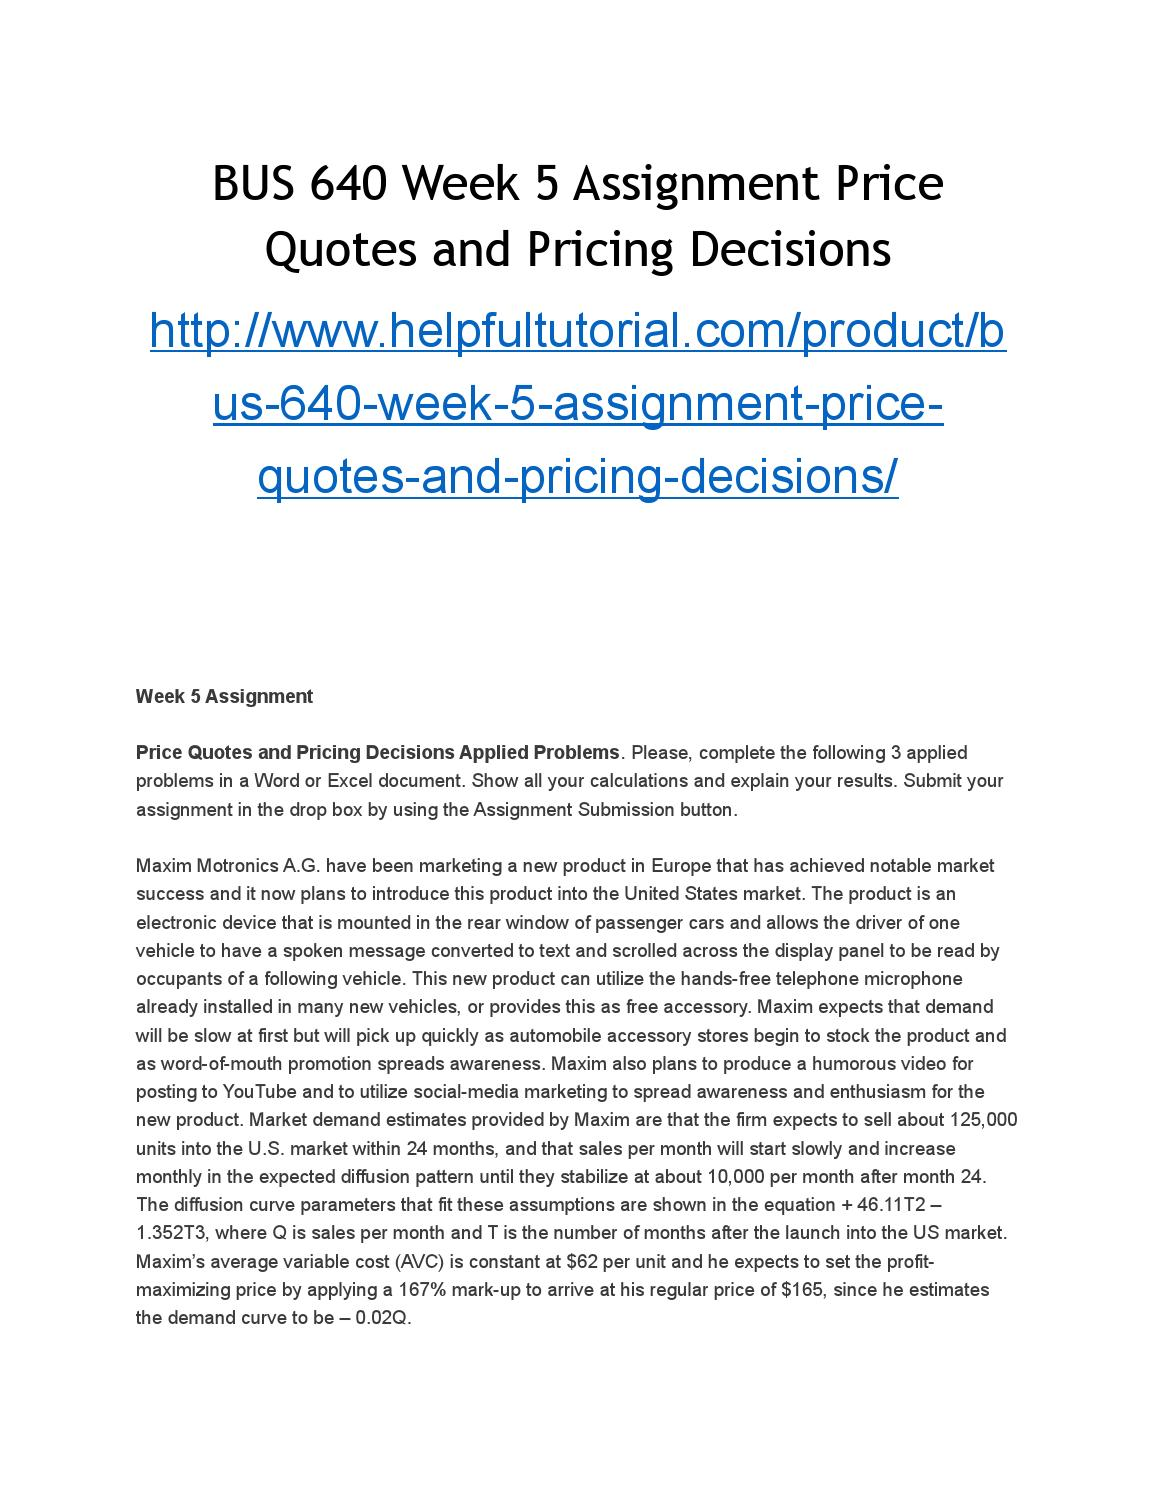 BUS 640 Week 5 Assignment Price Quotes and Pricing Decisions